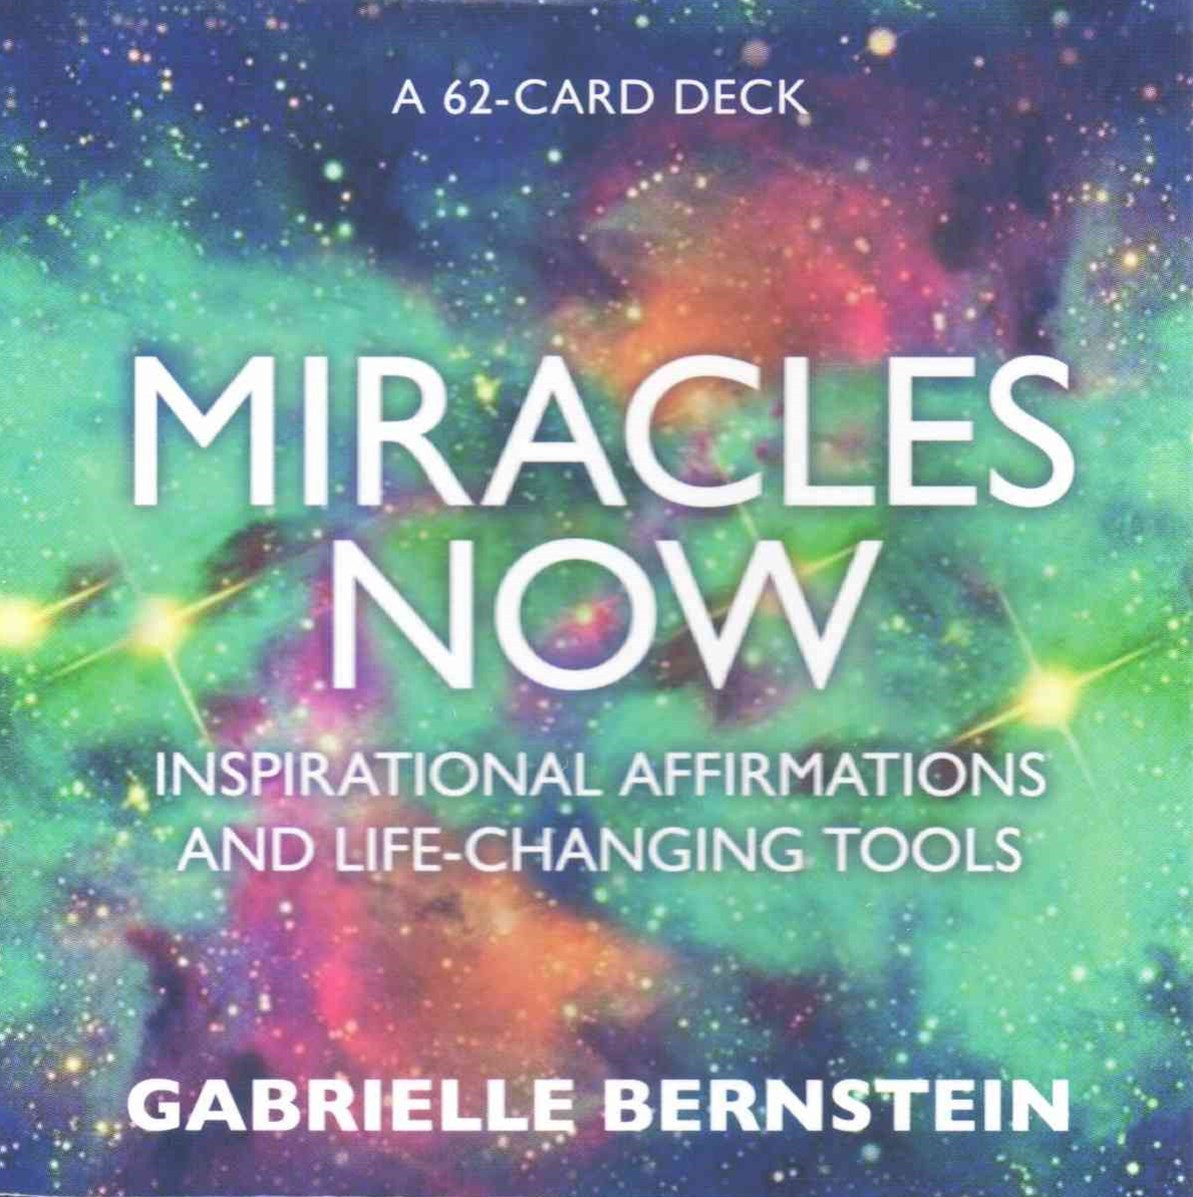 Miracles Now: Inspirational Affirmations And Life-Changing Tools: A 62-Card Deck